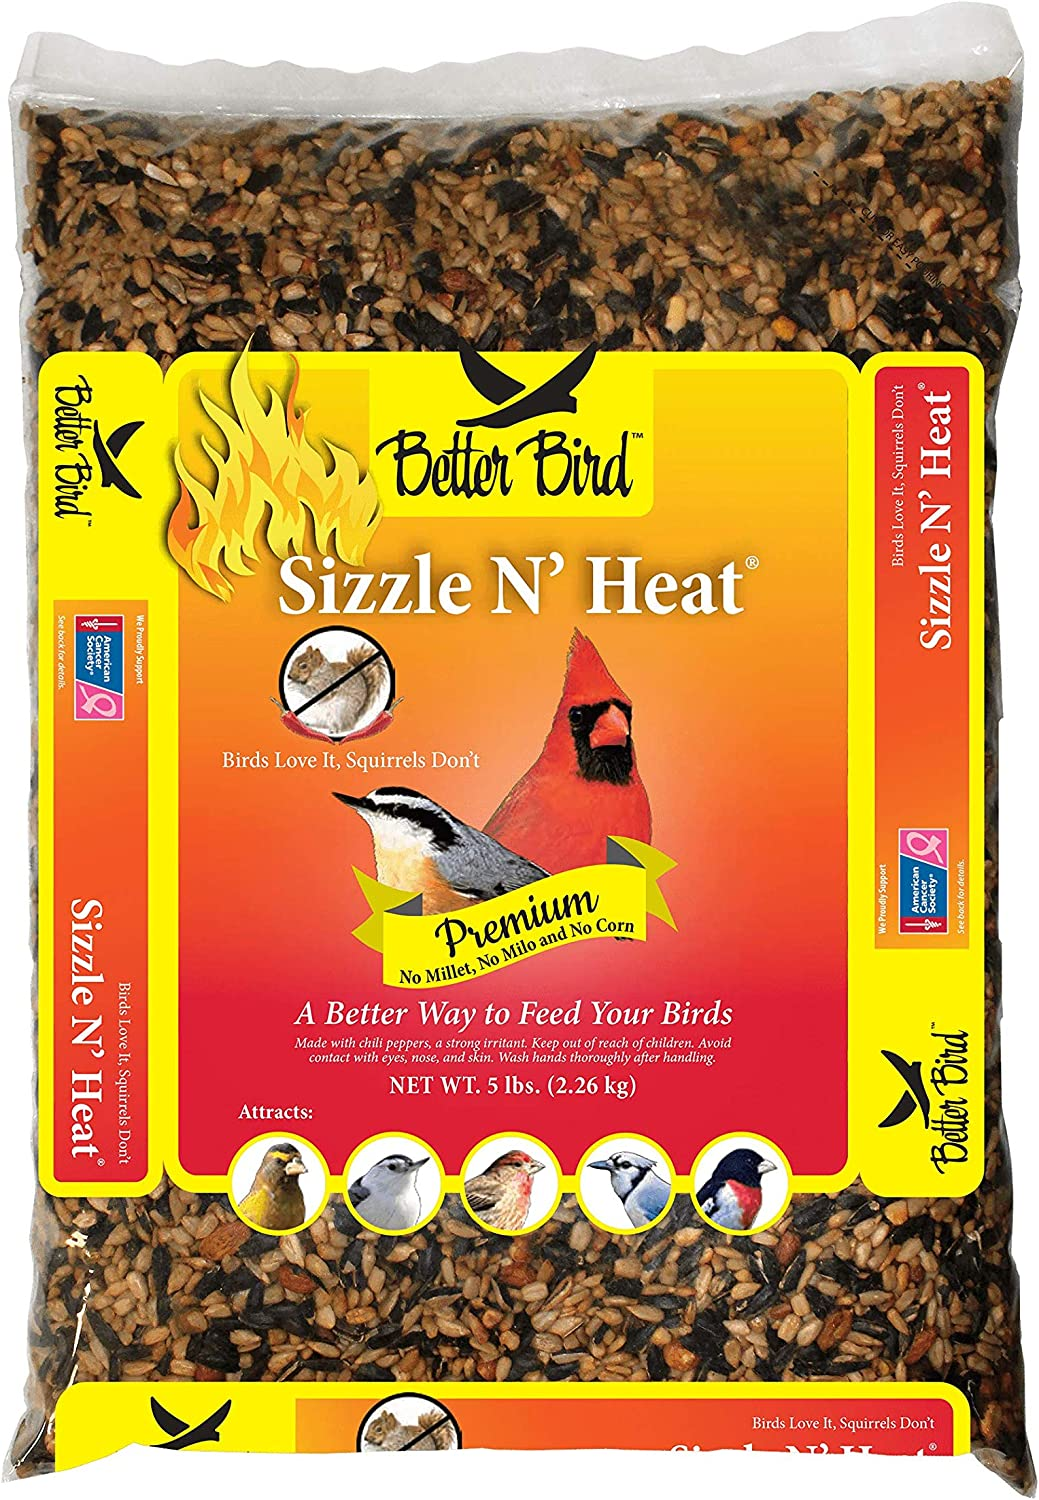 Better Bird, Sizzle N' Heat, 5 lb Poly Bag, Pack of 1